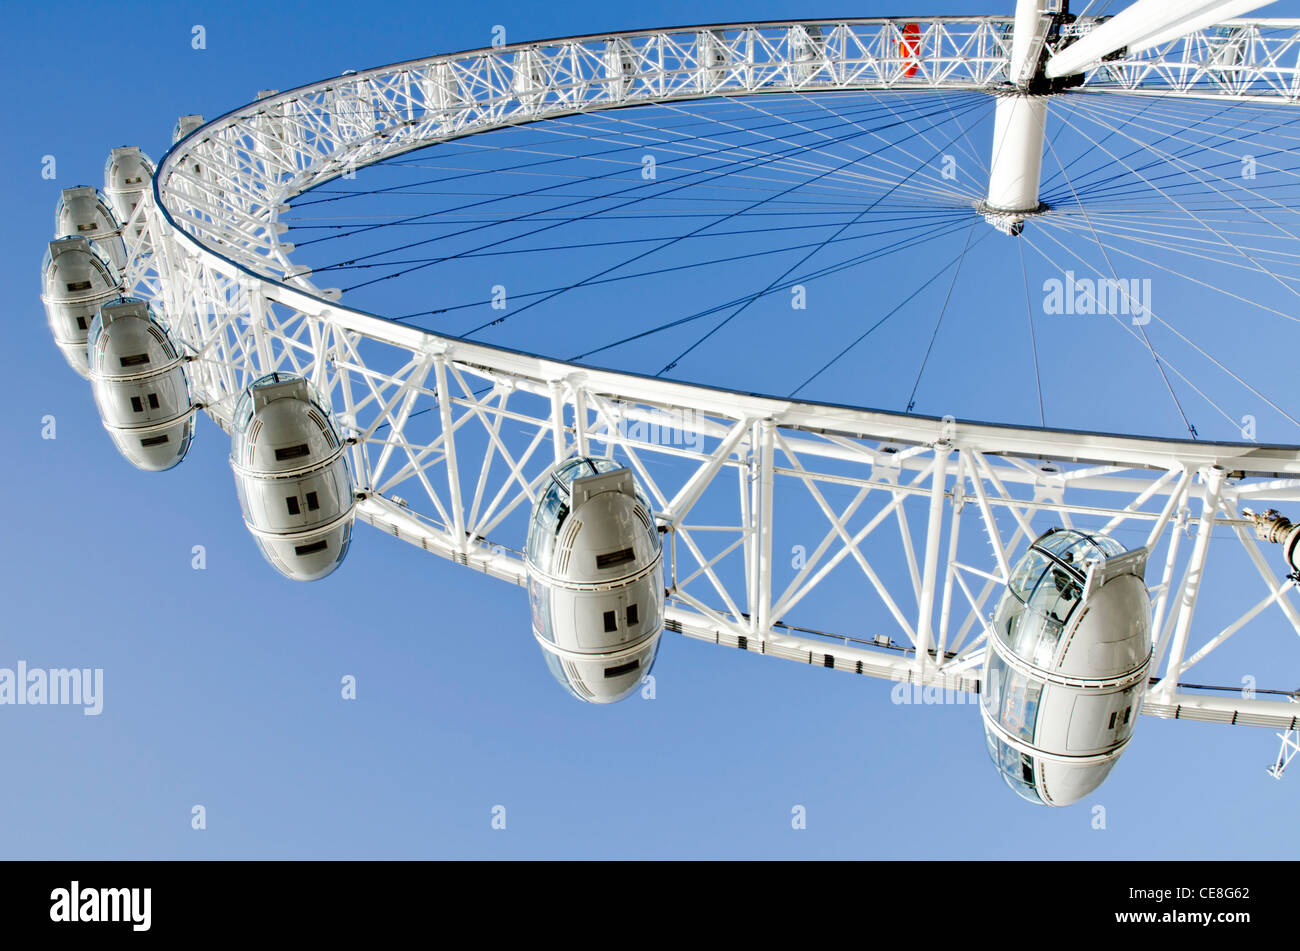 The London Eye (Millennium Wheel) Ferris Wheel on the South Bank of the River Thames in the Borough of Lambeth, - Stock Image